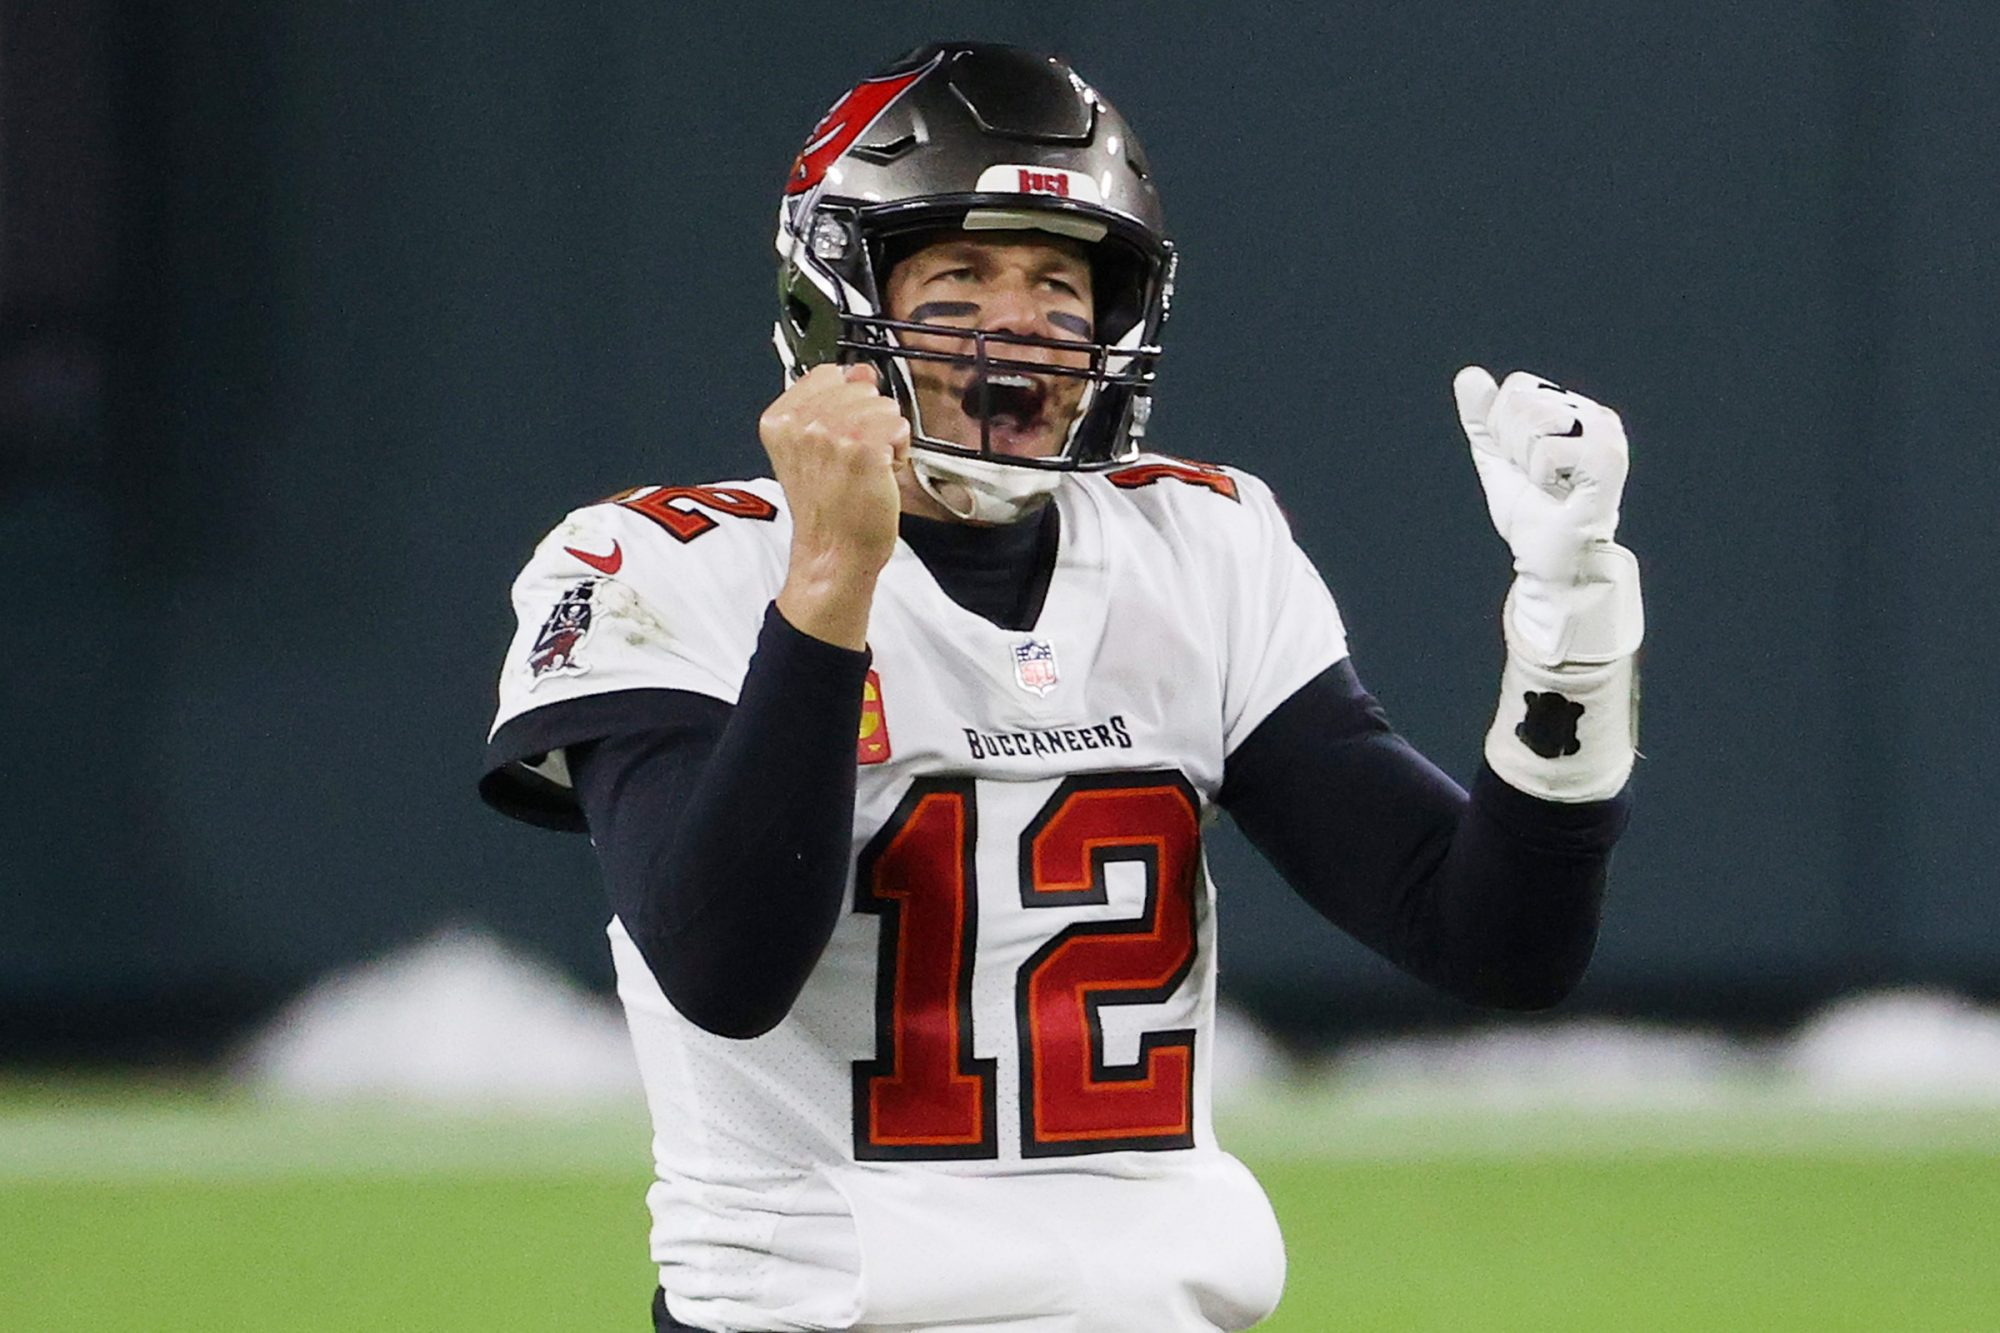 Tom Brady #12 of the Tampa Bay Buccaneers celebrates in the final seconds of their 31 to 26 win over the Green Bay Packers during the NFC Championship game